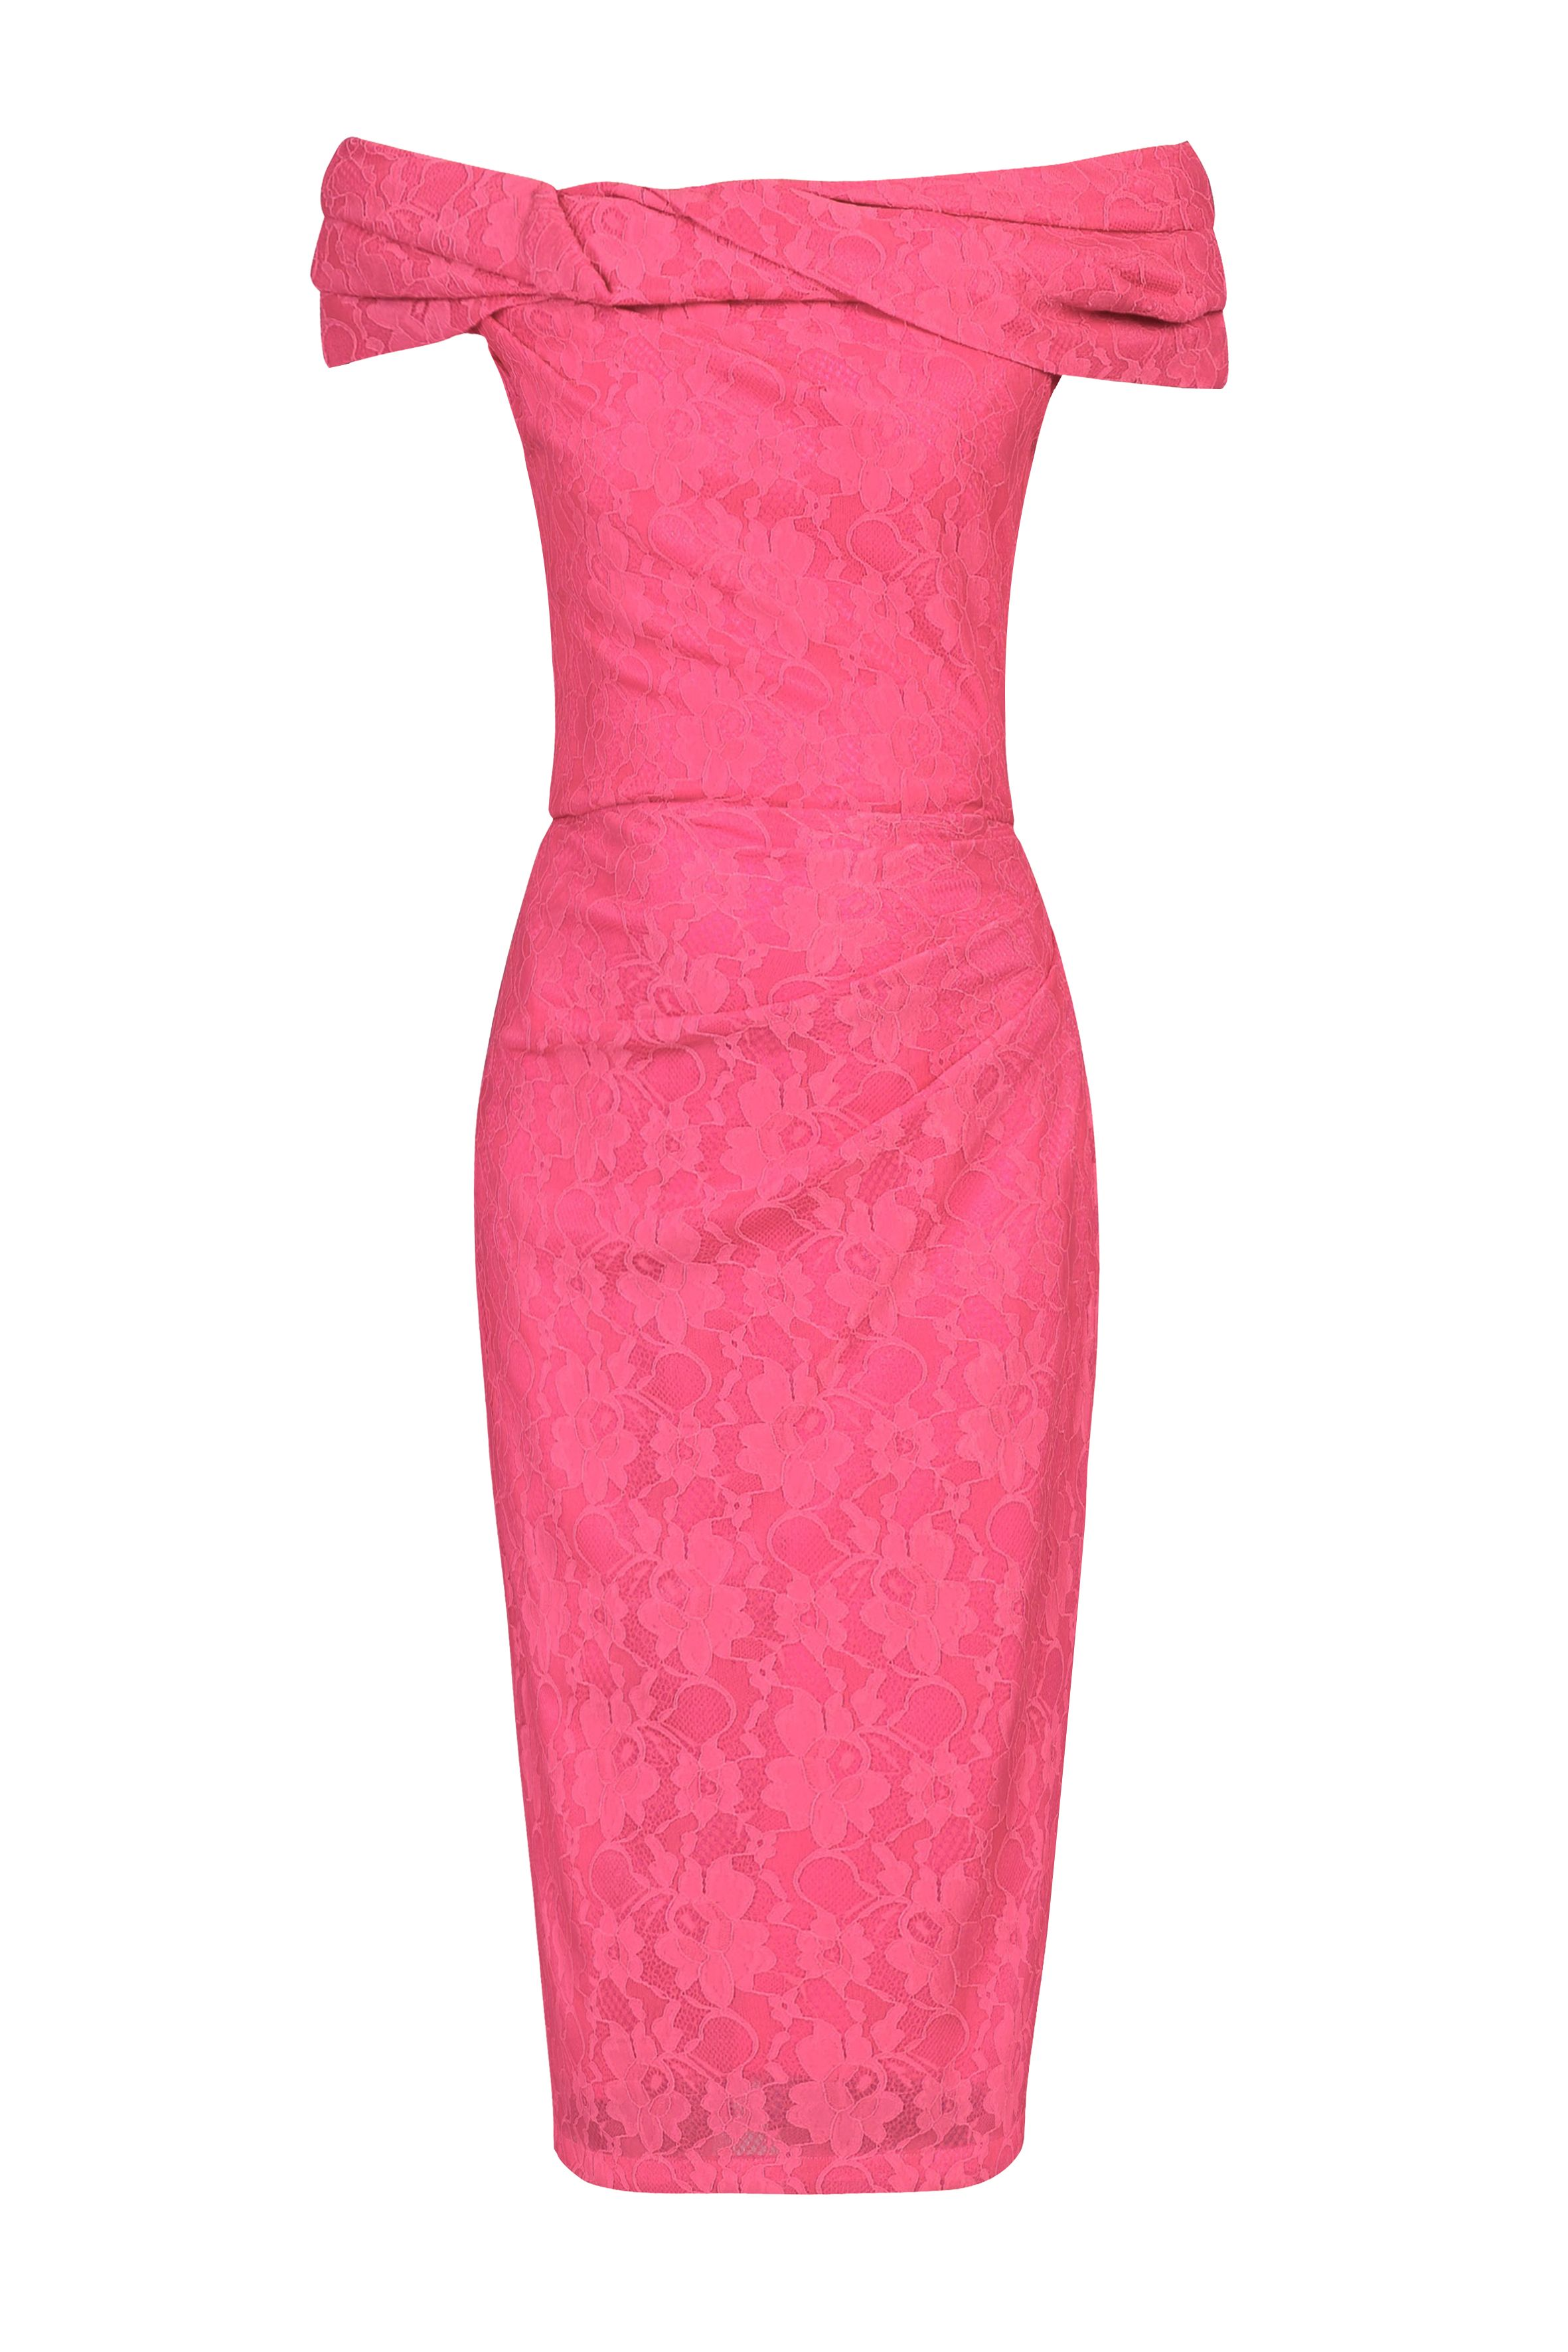 Jolie Moi Lace Bonded Bardot Dress, Pink